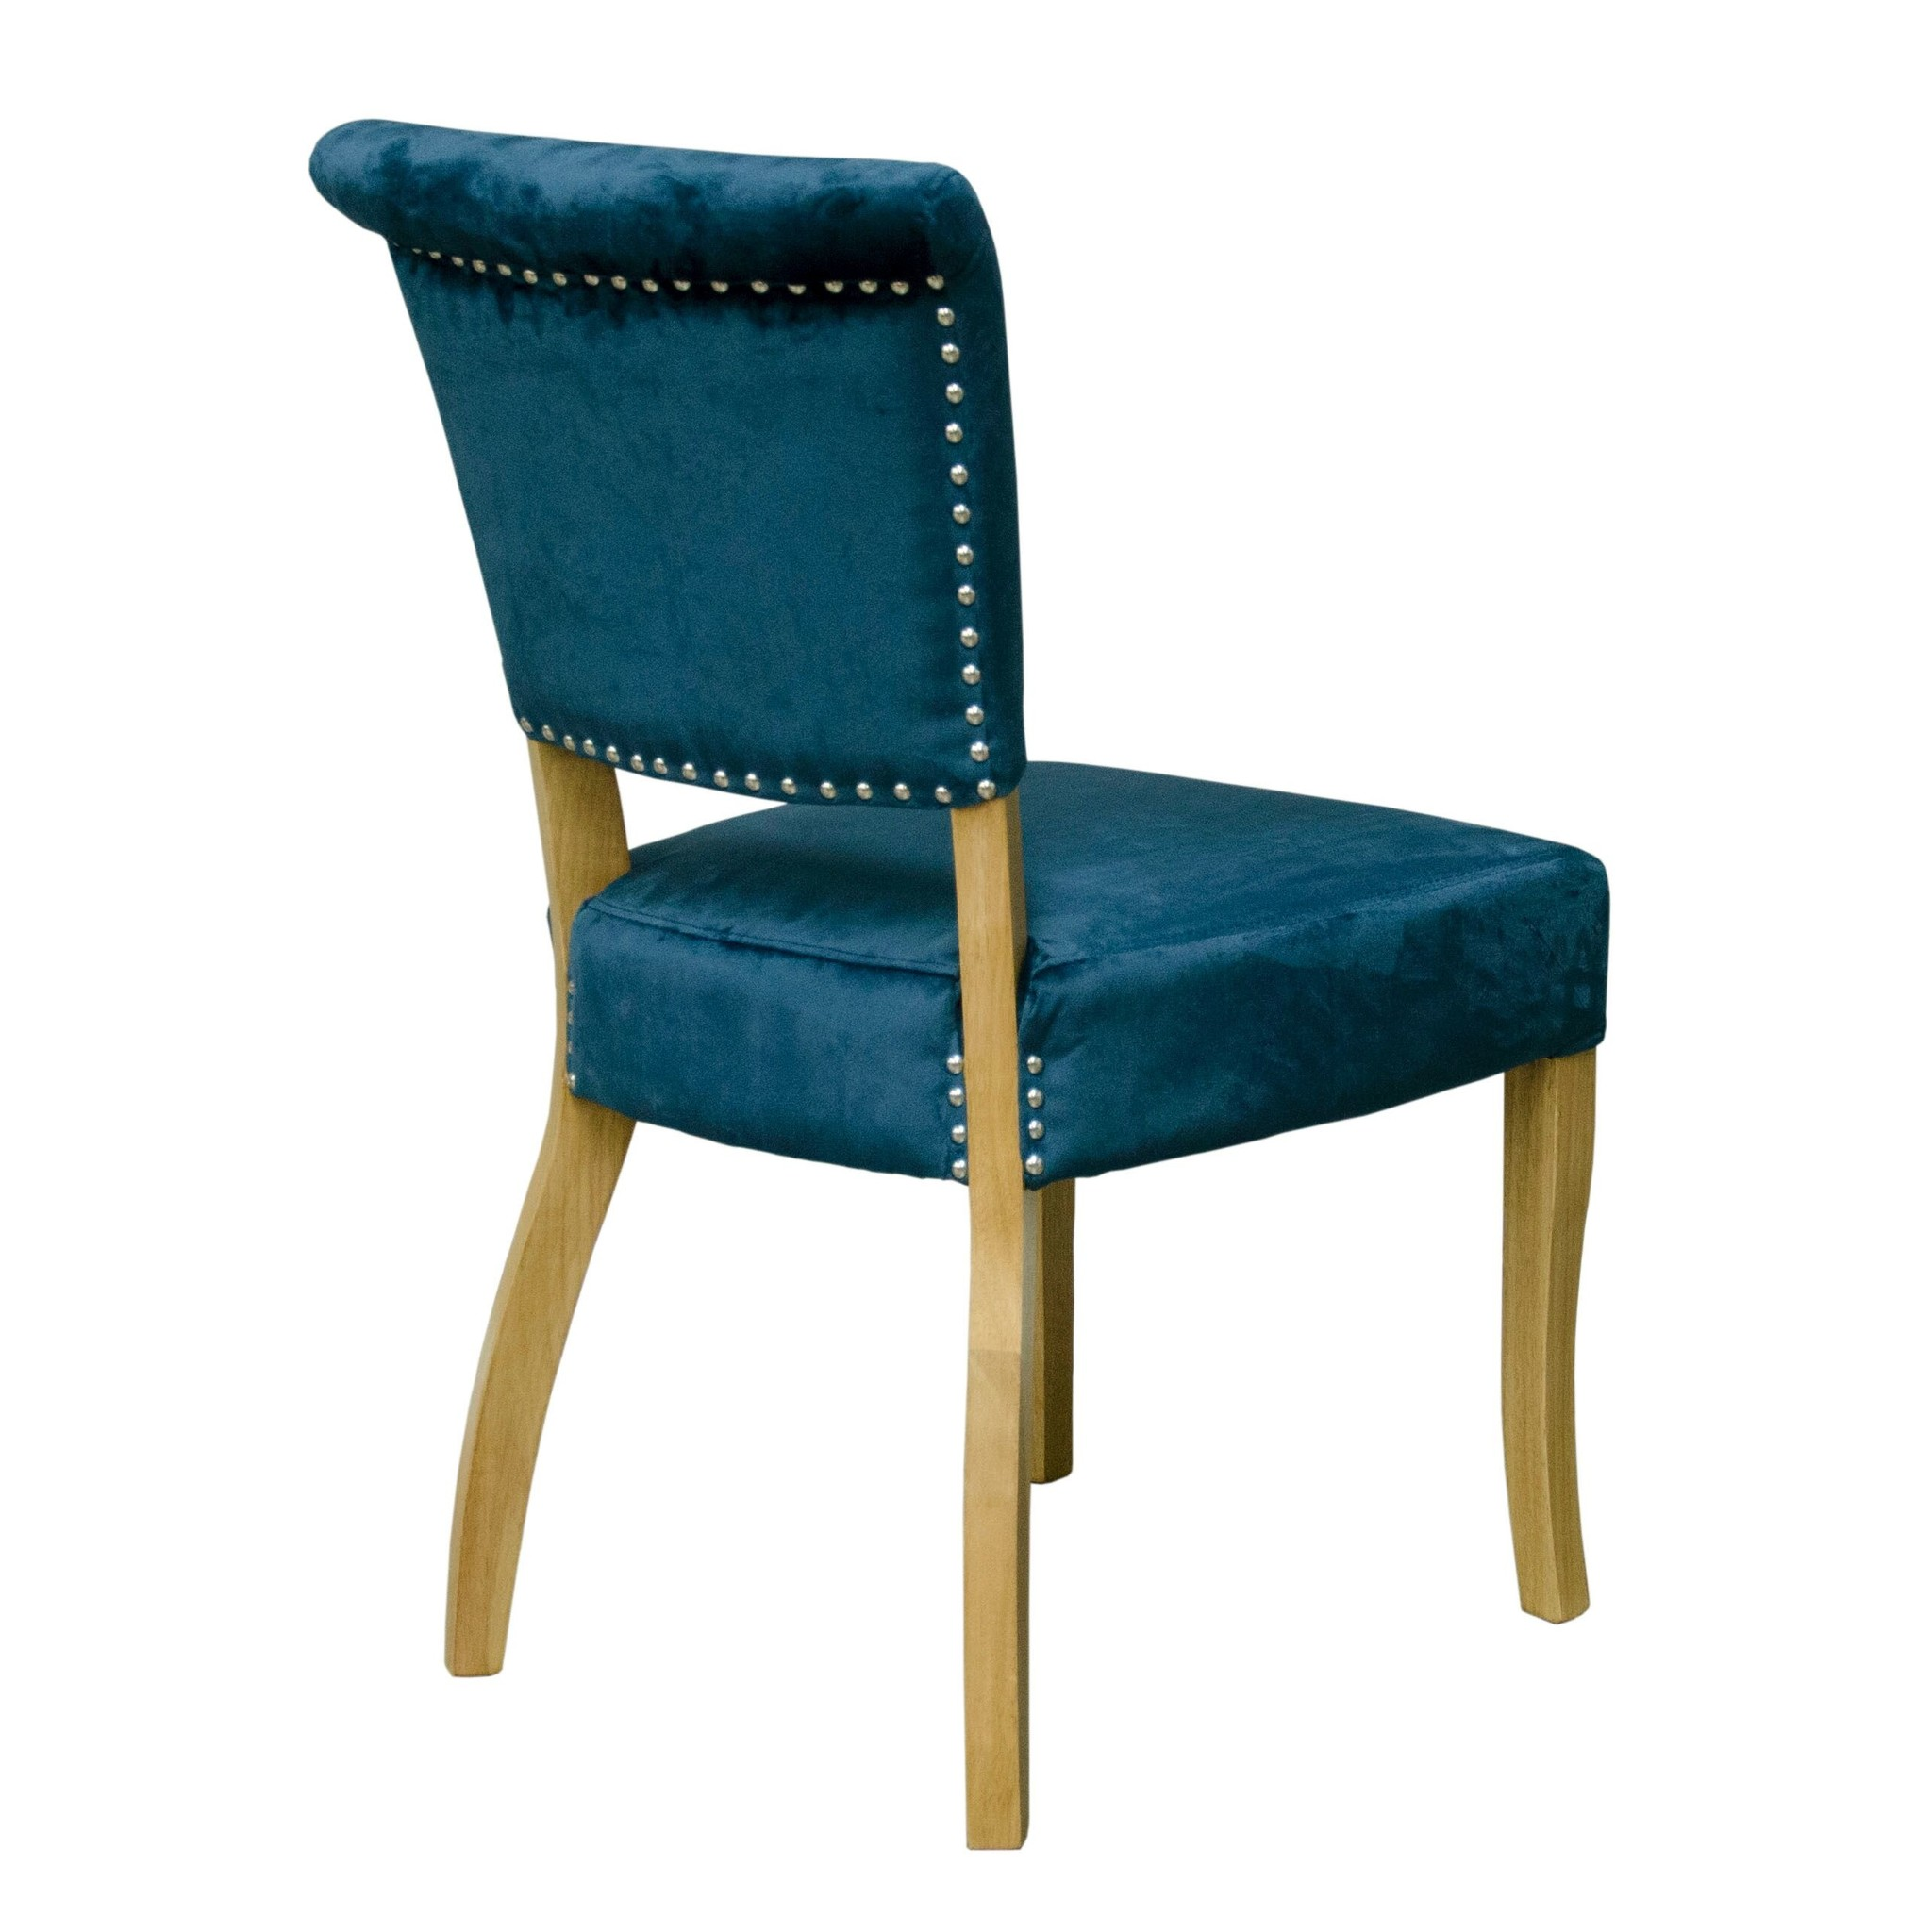 HomestyleGB Capri Blue Velvet Dining Chair - Pair